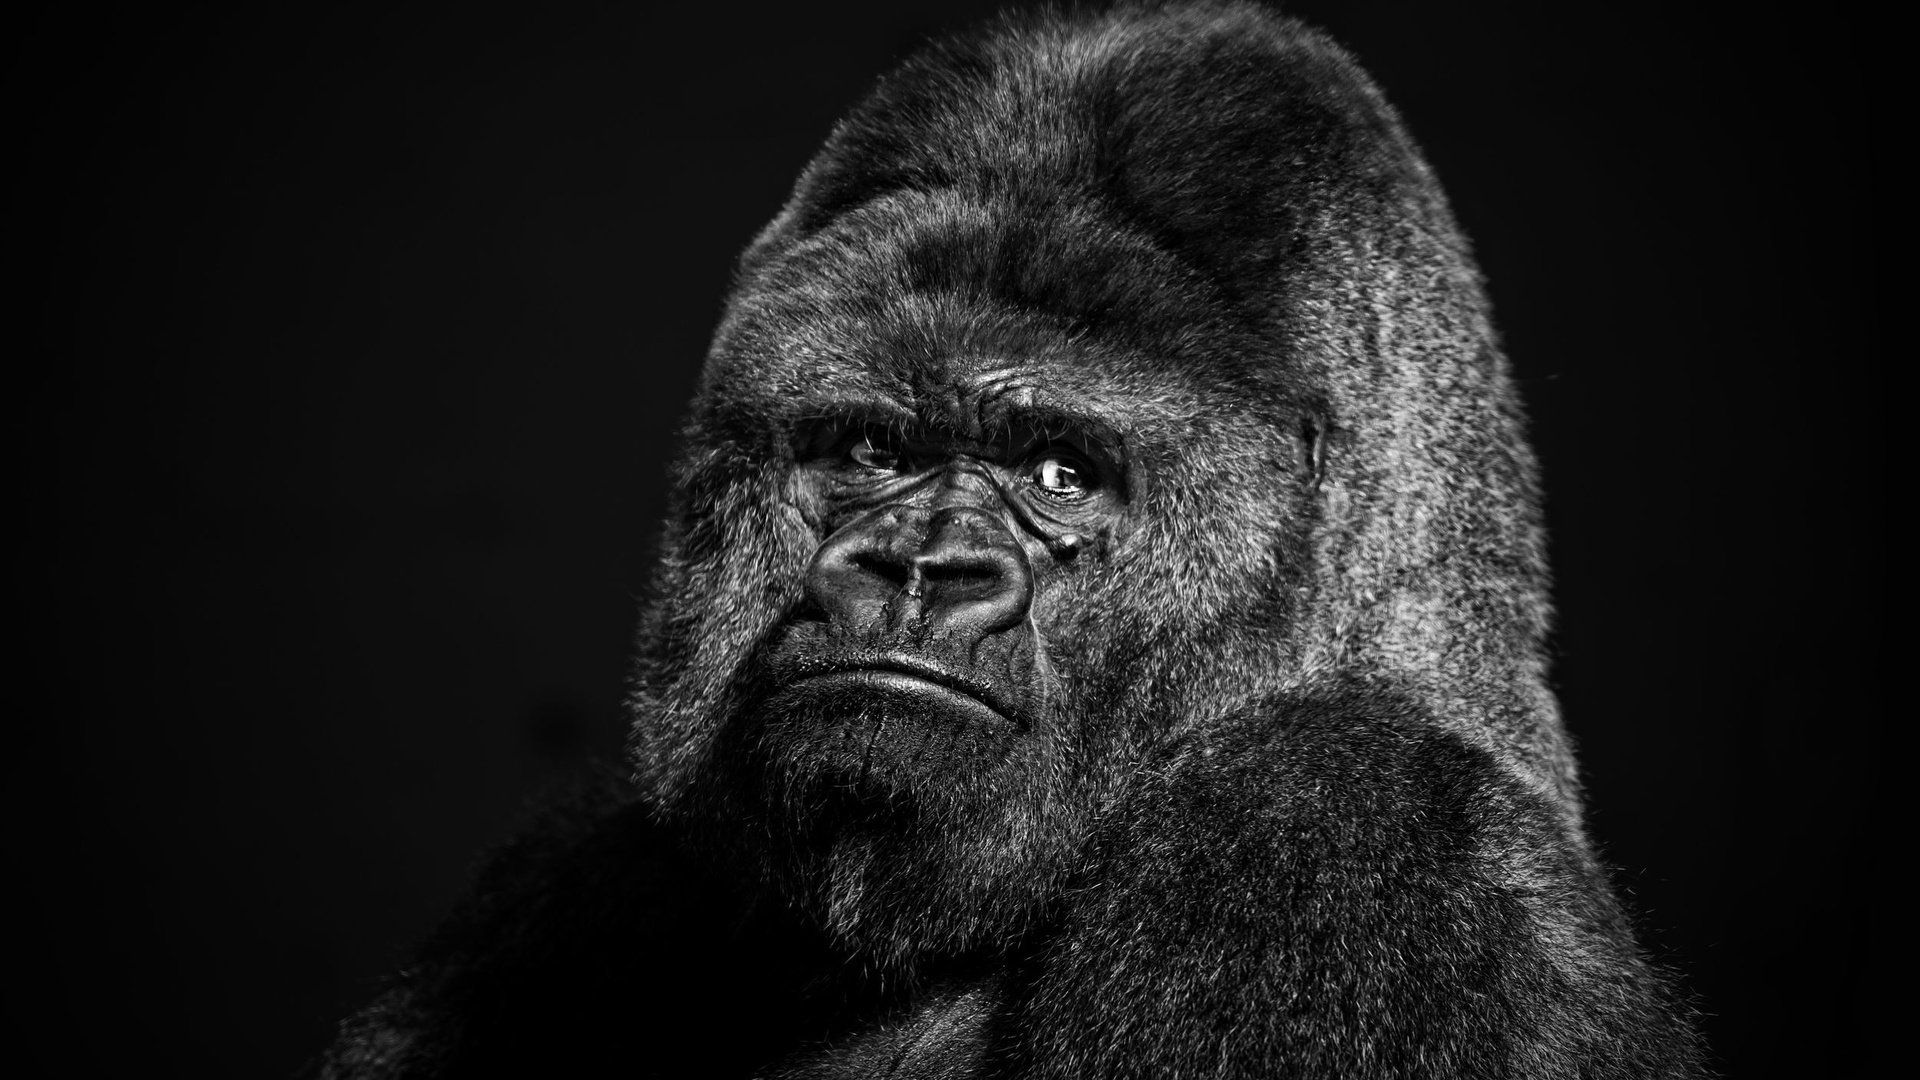 Gorilla Black And White Photo